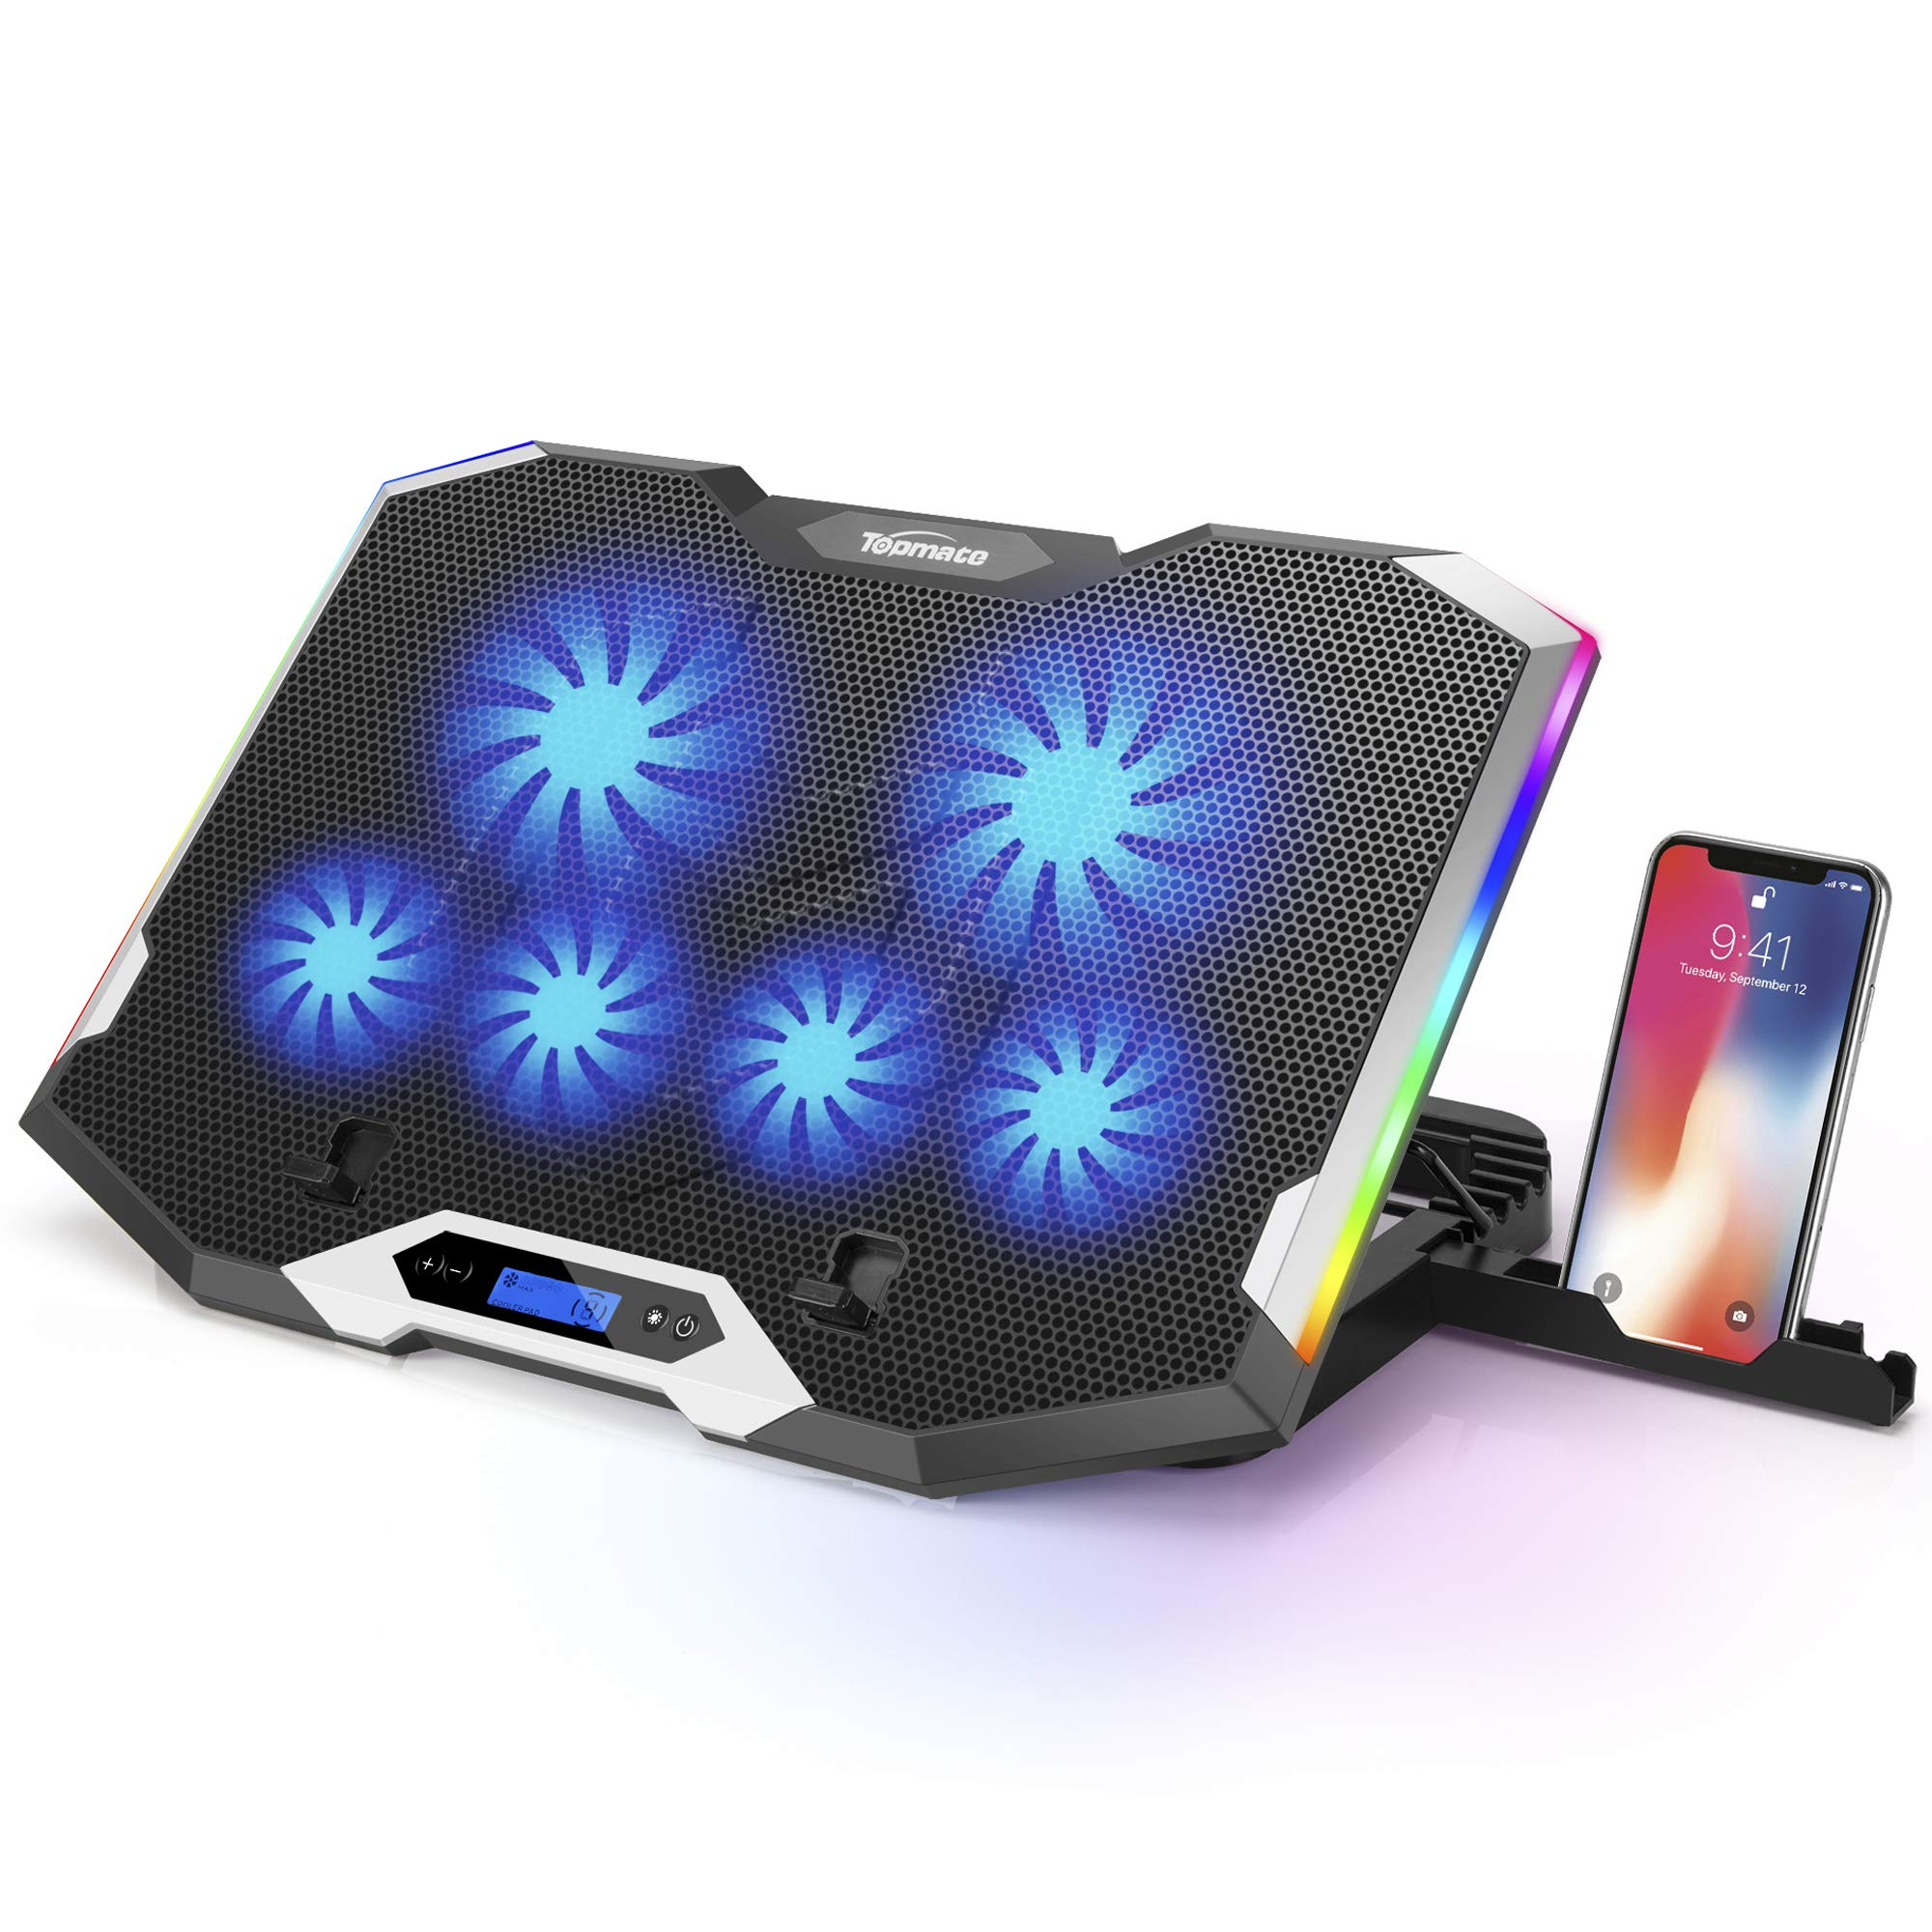 """TopMate C11 Laptop Cooling Pad Silver Wing Cooler, RGB Lighting Laptop Cooler Fan Compatible 11-17.3"""" Laptop, 6 Fans Strong Wind and 7 Lighting Mode Adjustable Angle"""